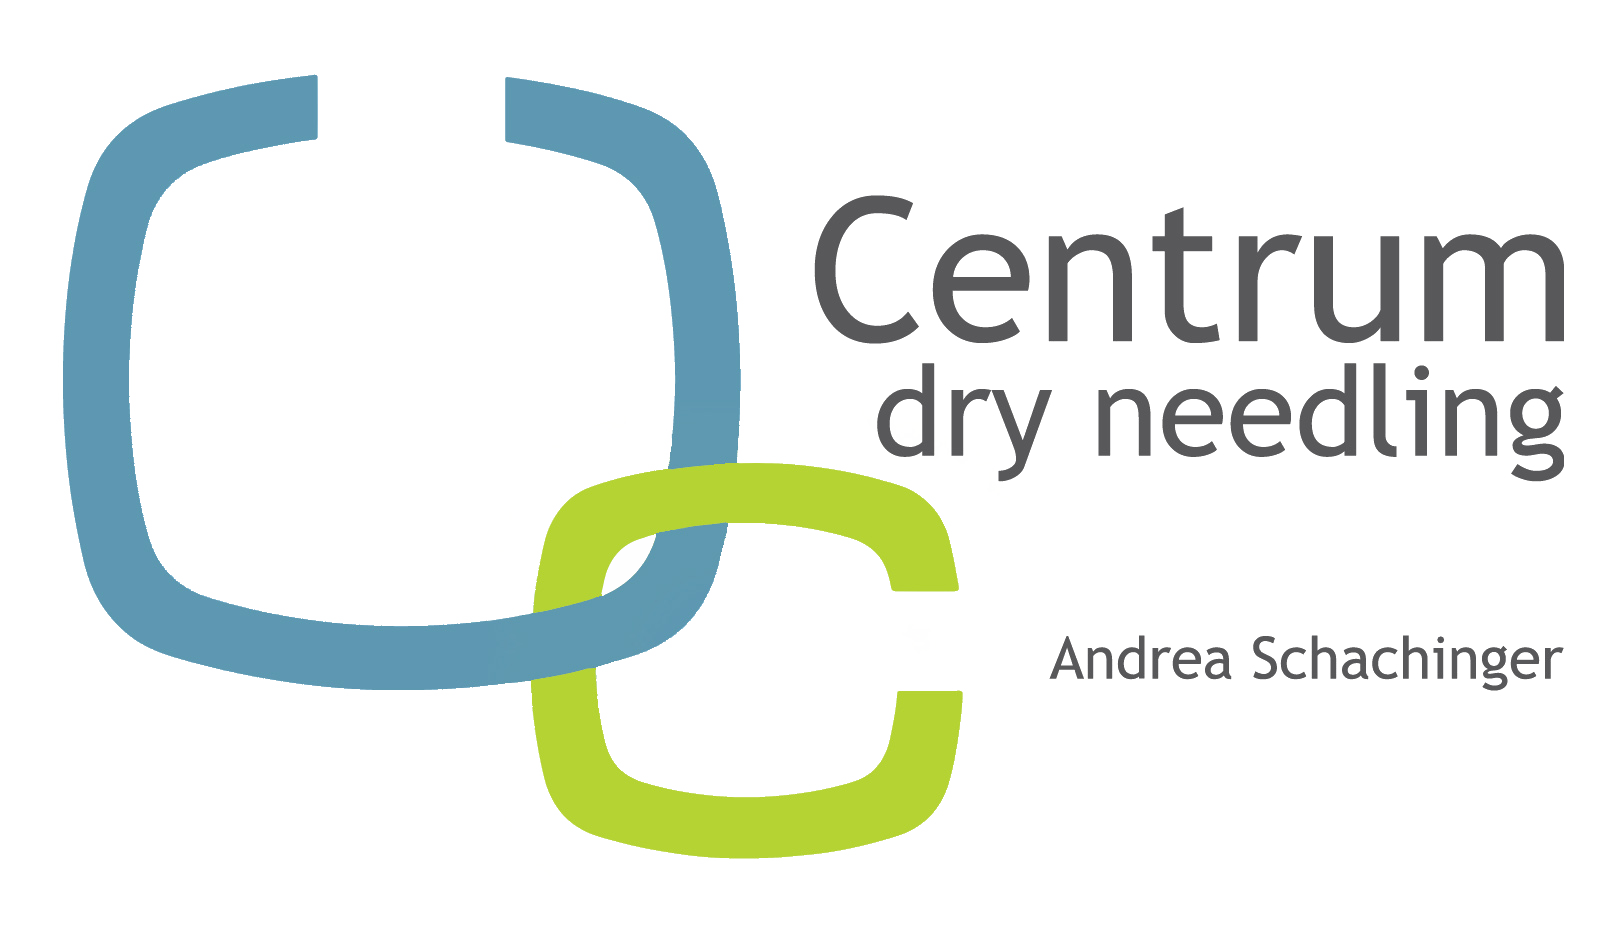 CENTRUM DRY NEEDLING